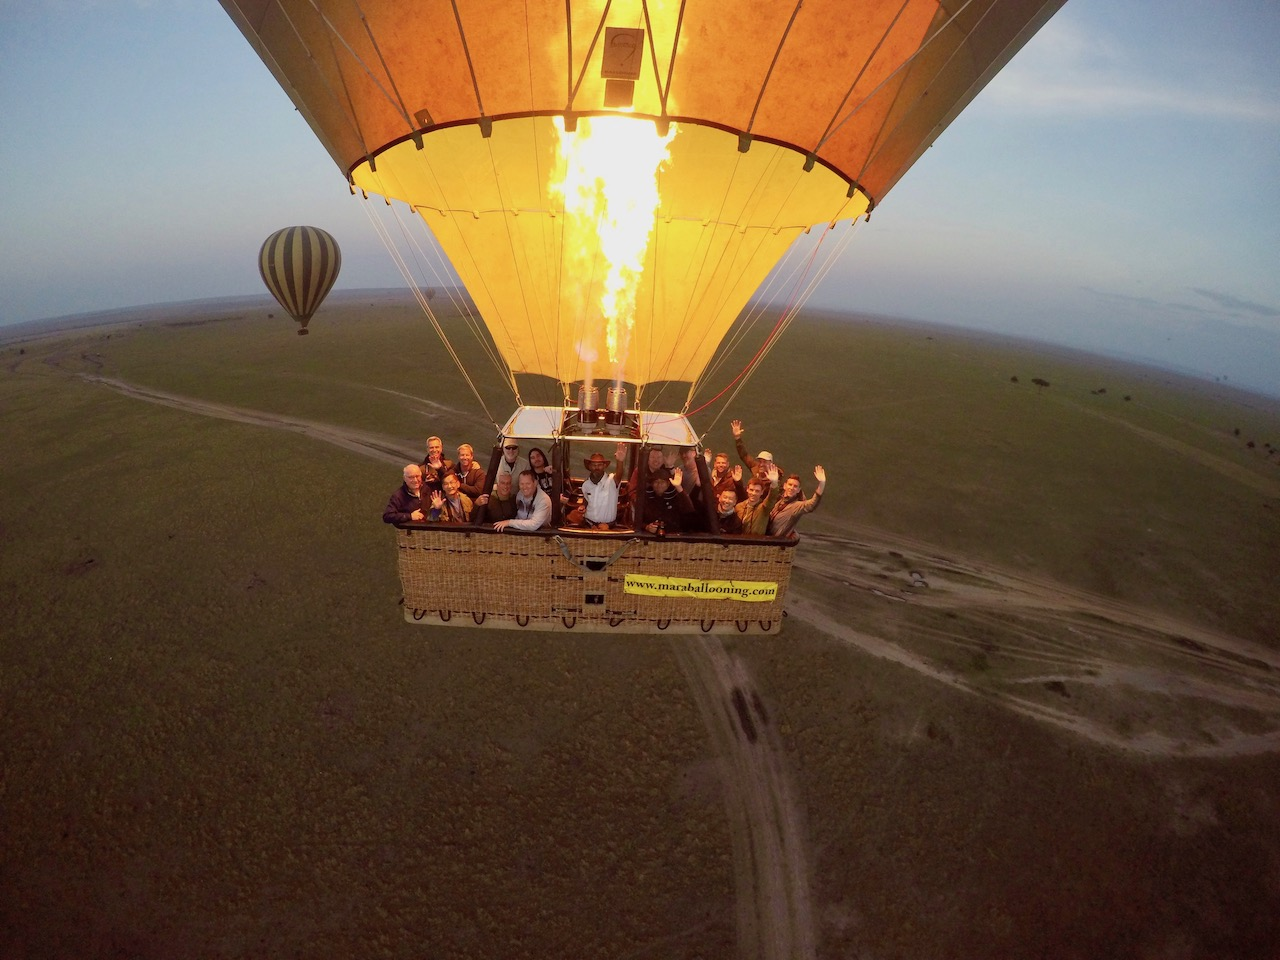 An Out Adventures group take a photo together while riding in a hot air balloon above Kenya.